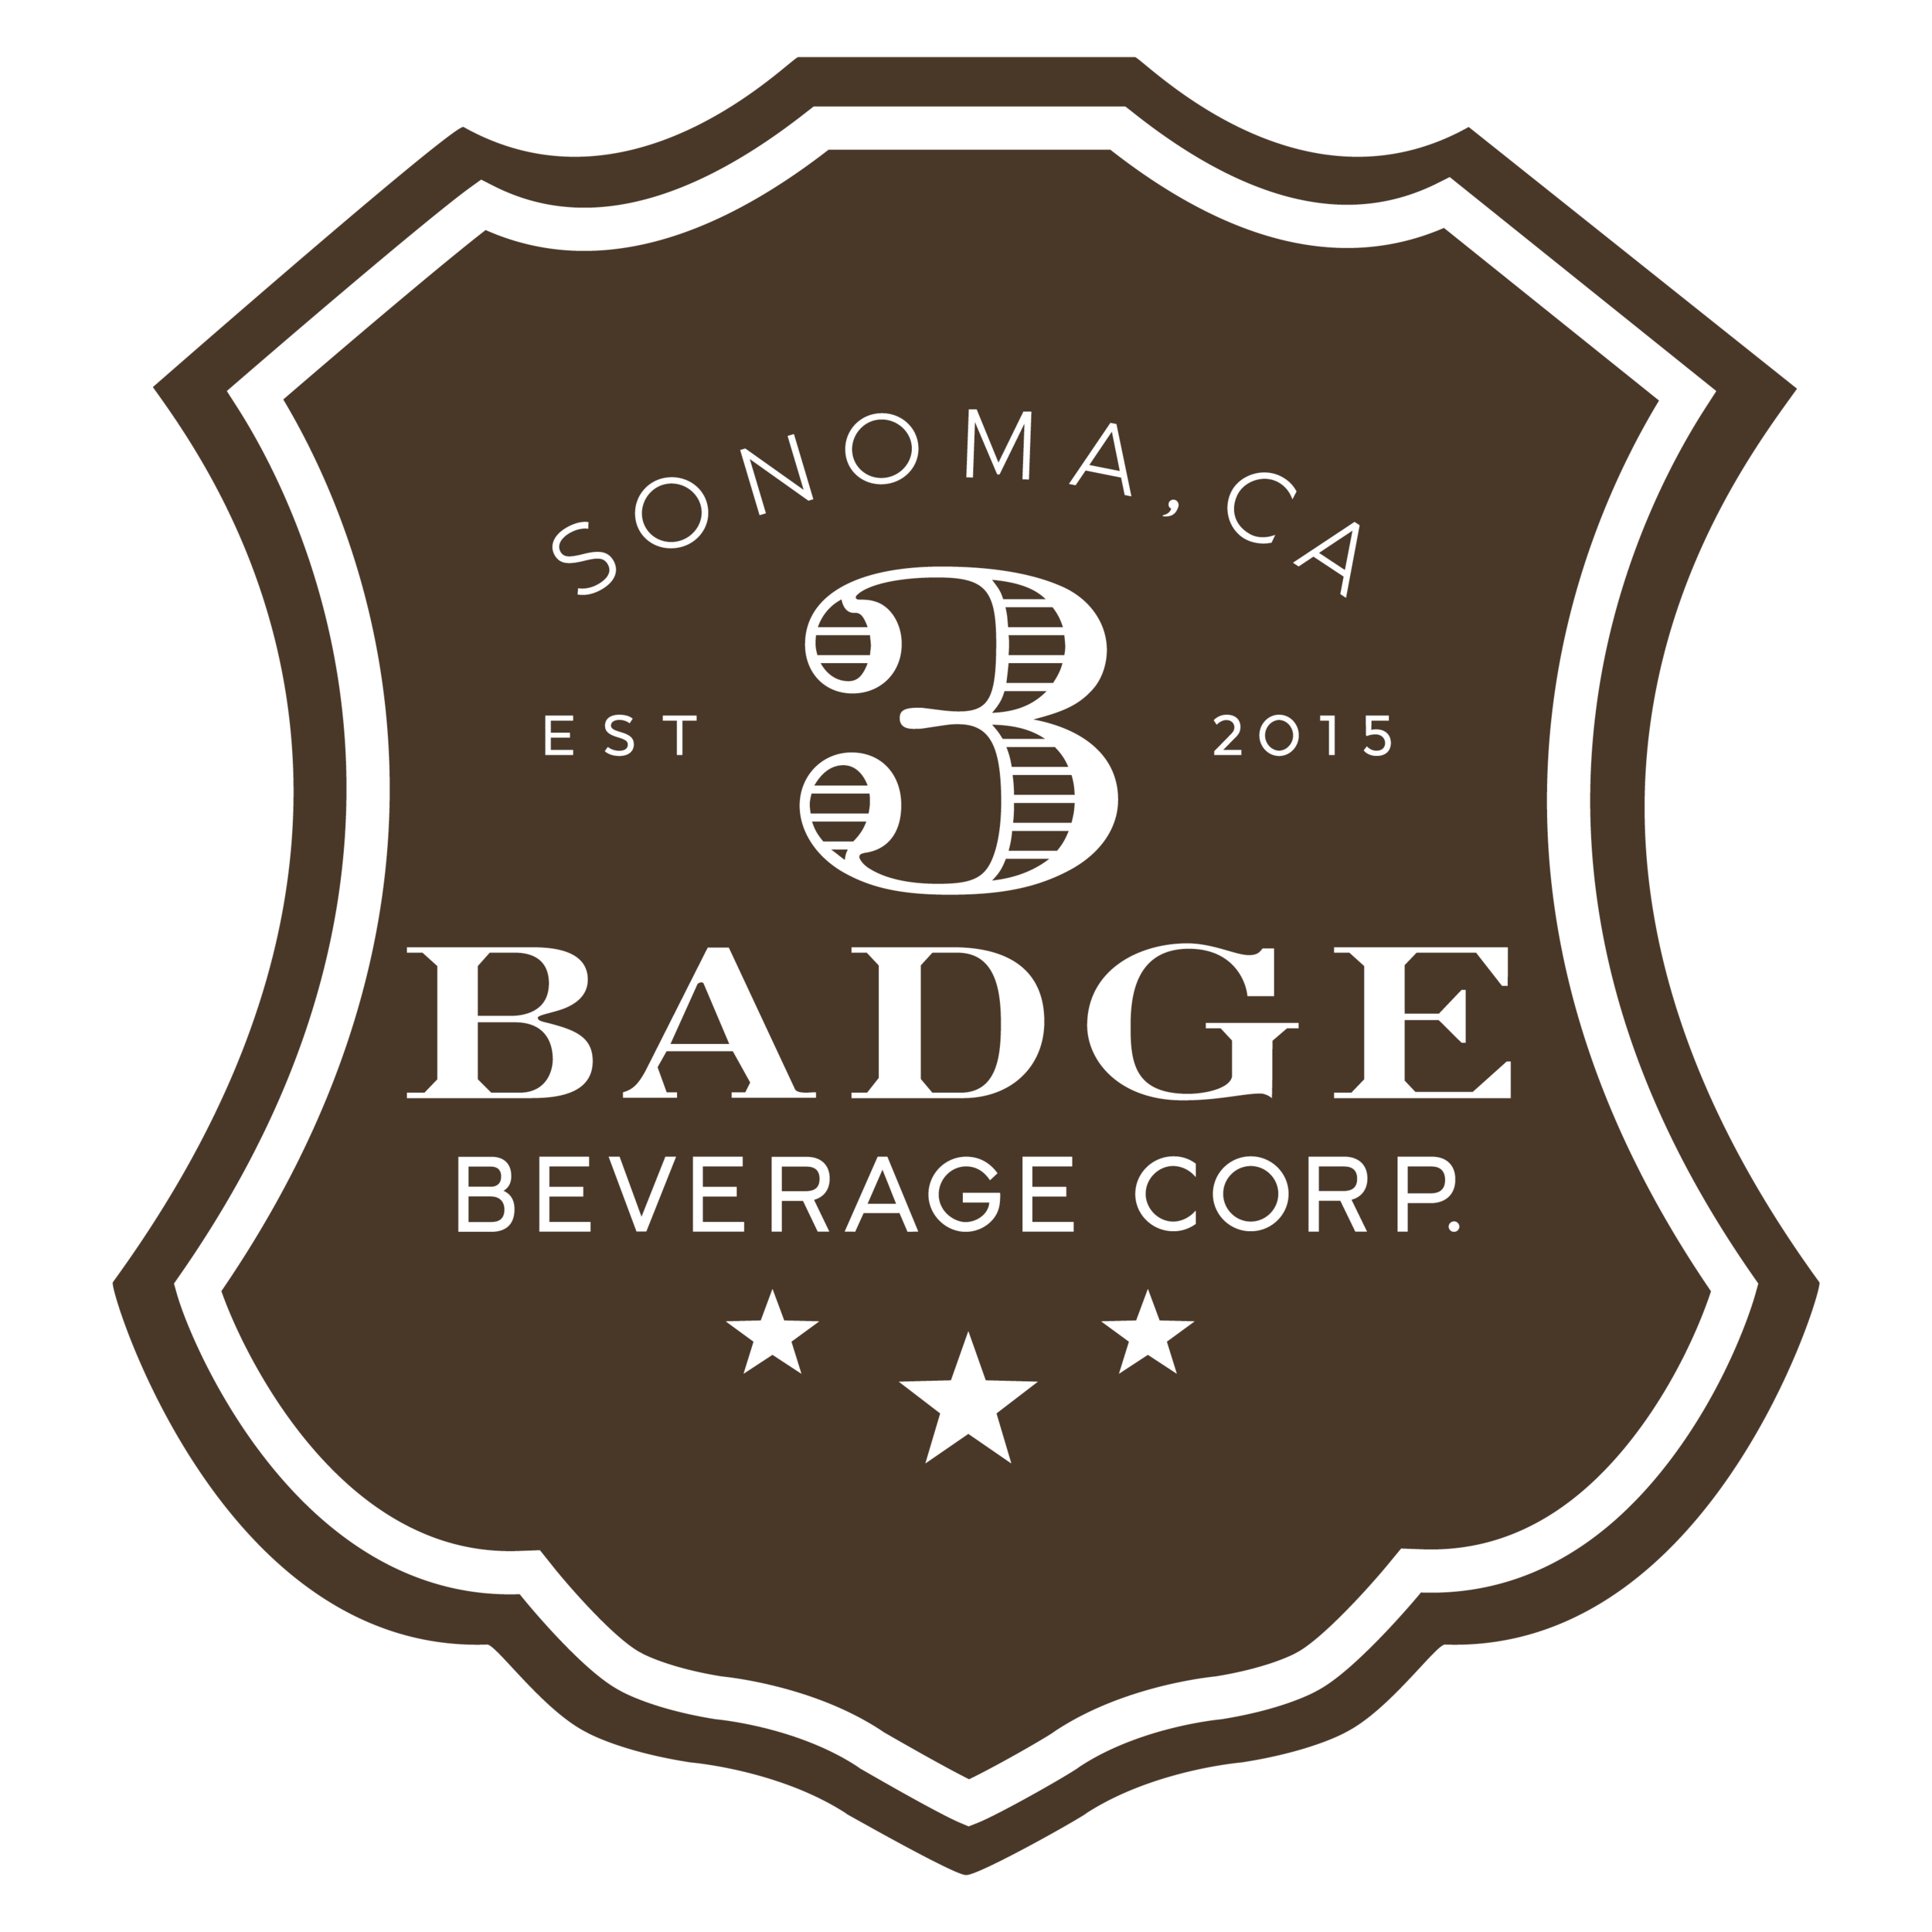 3 Badge Beverage_Primary Logo.png